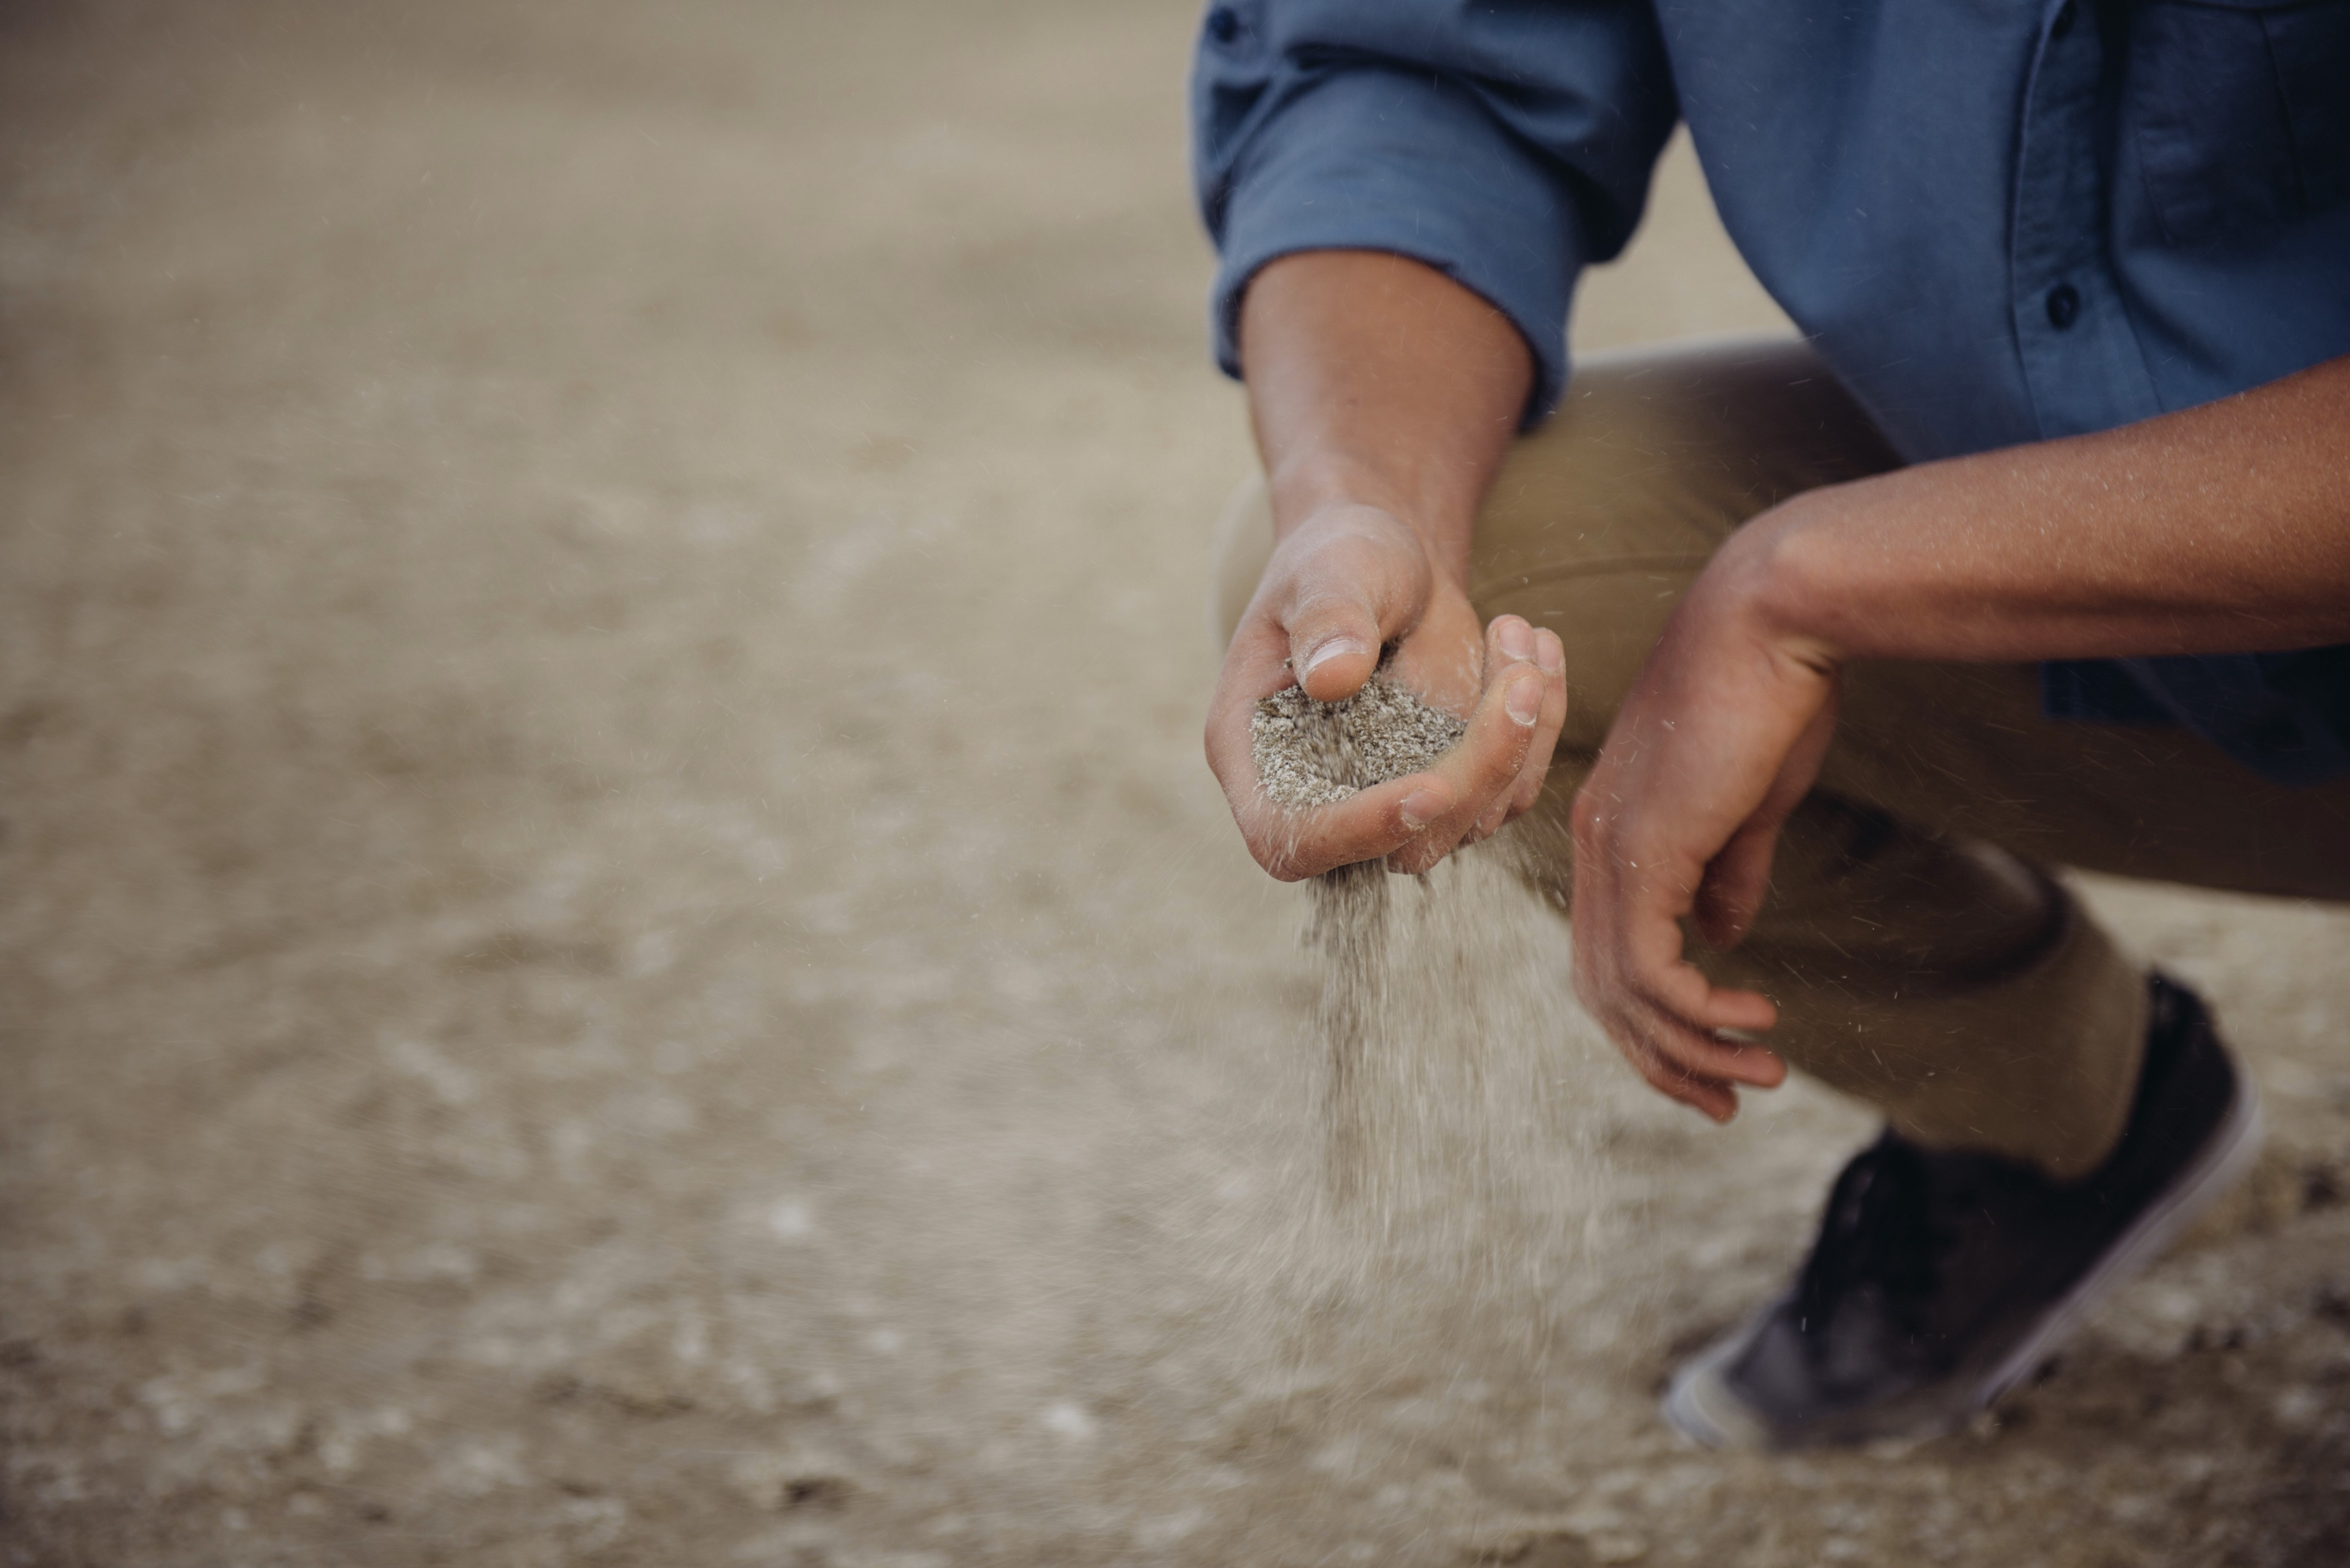 A person sifts through dry soil